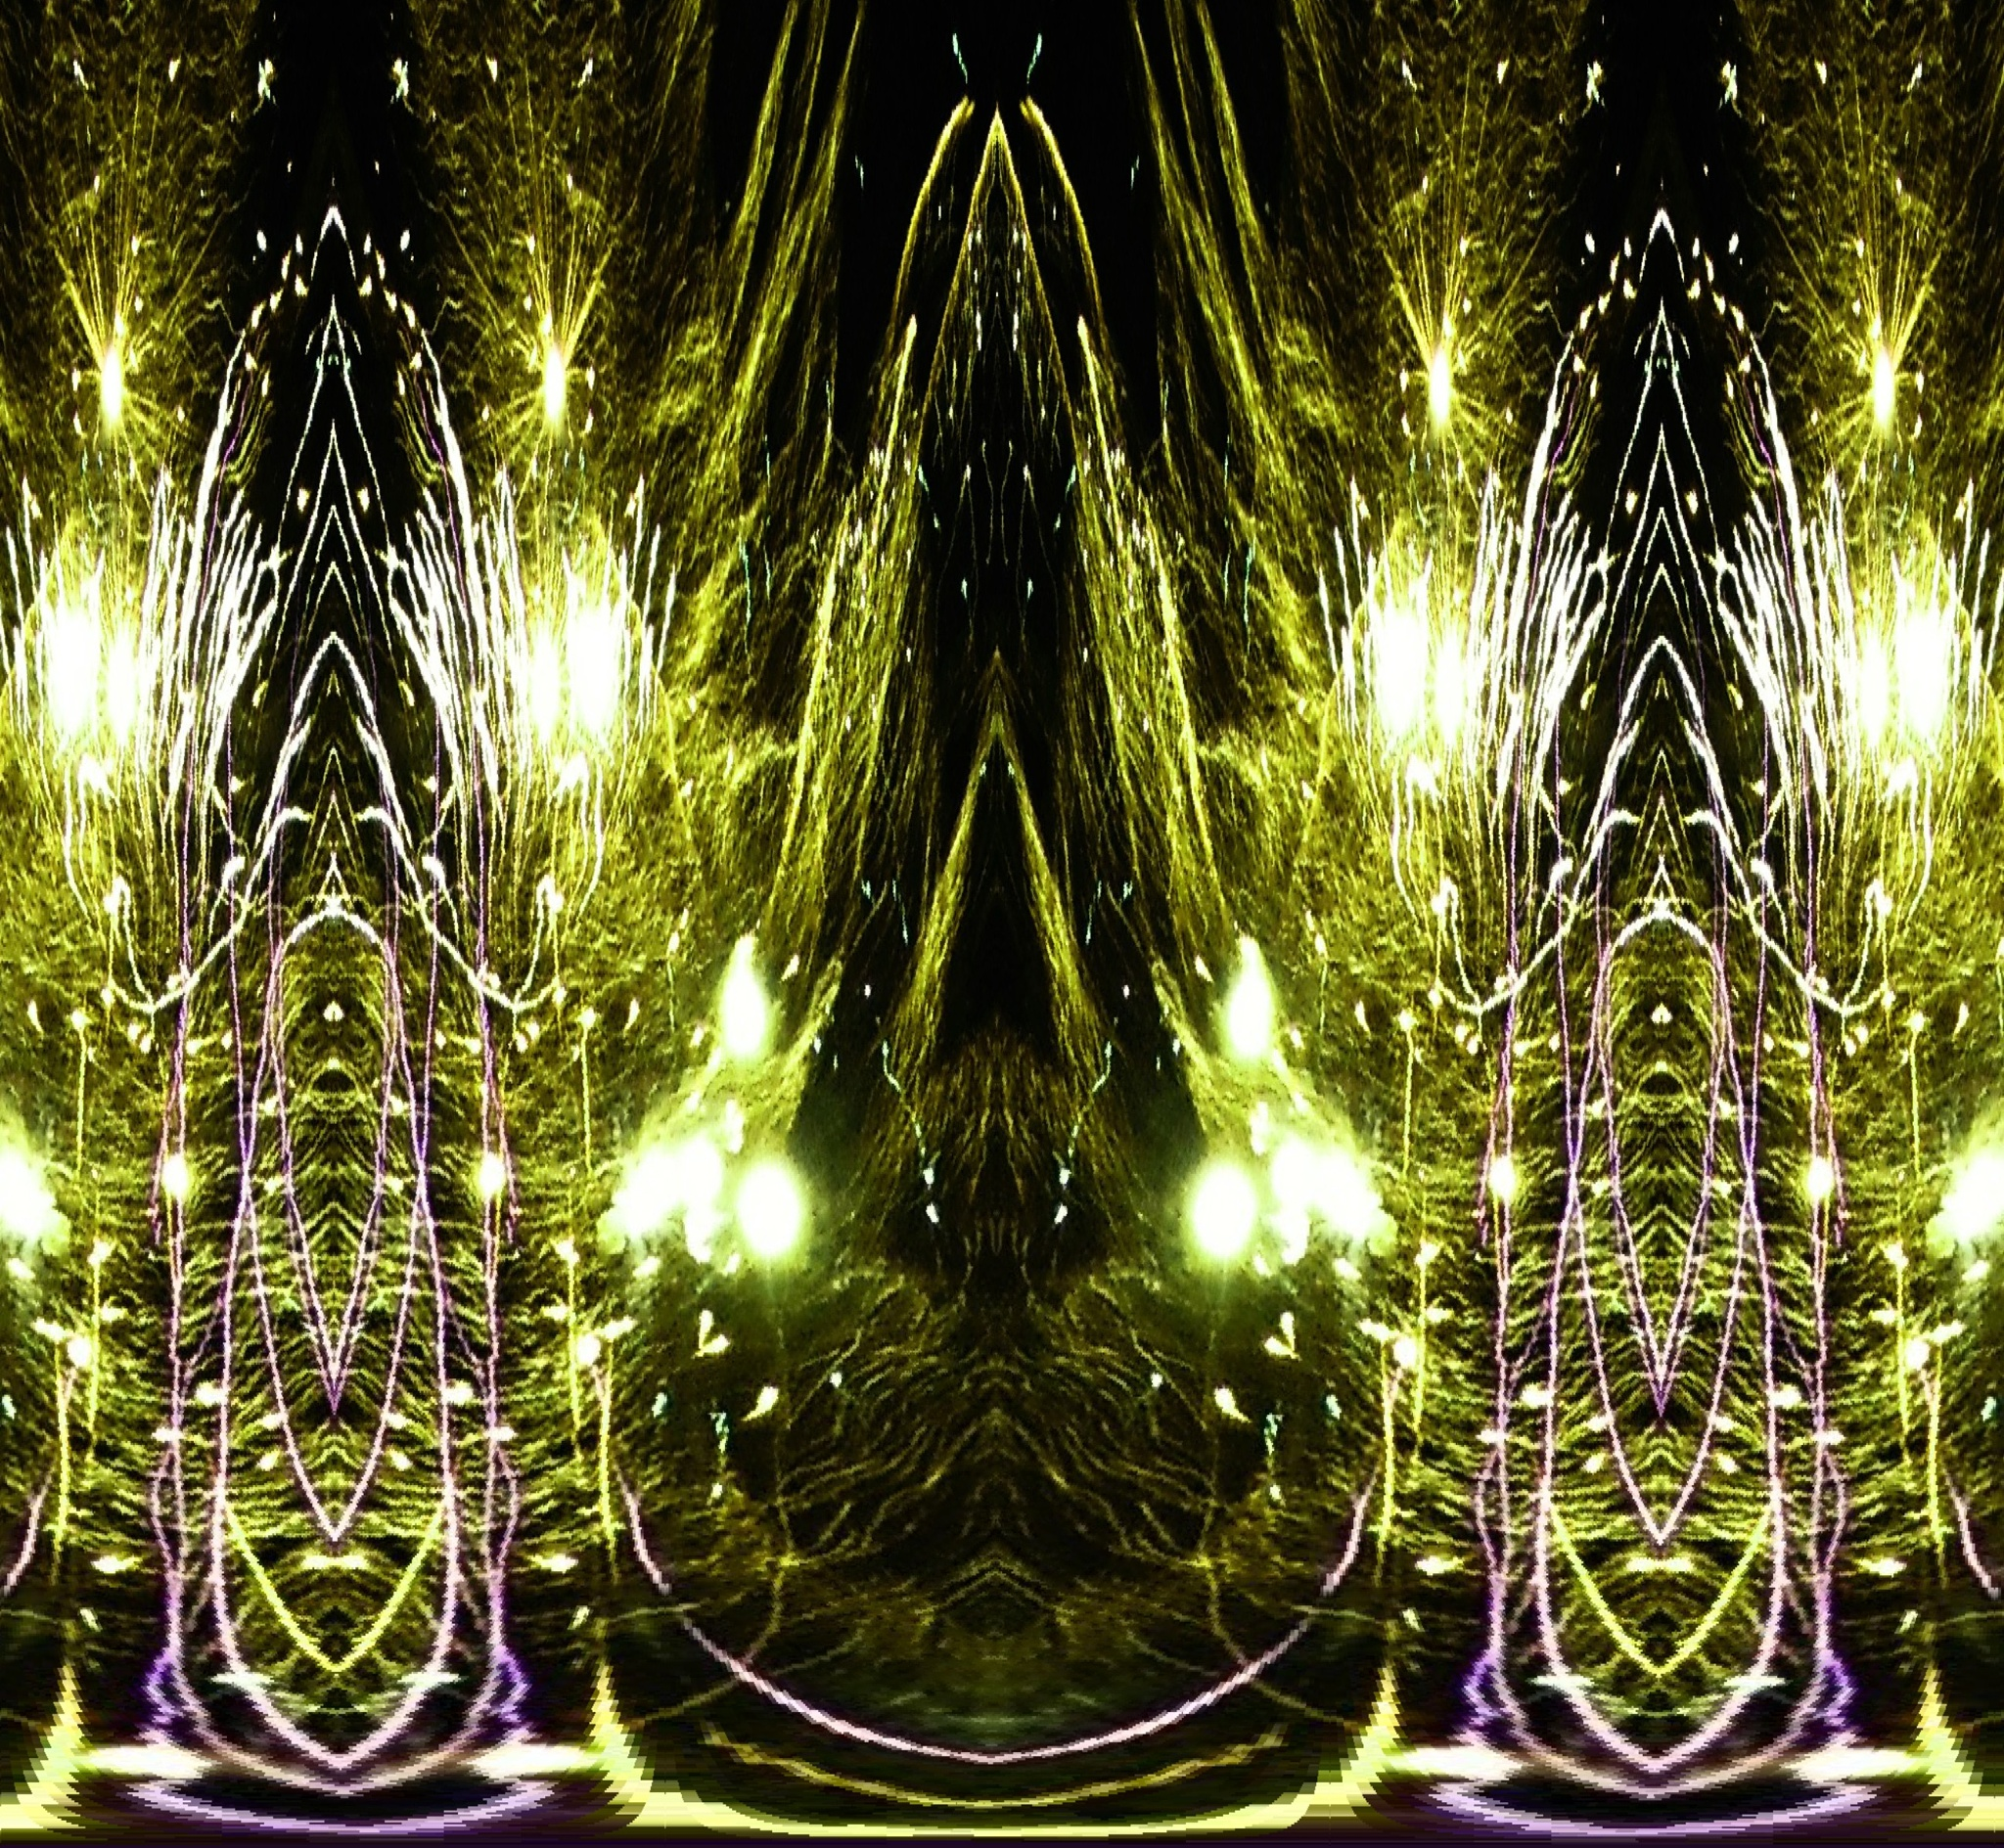 Firework (Abstract) 2 by 4everlooking